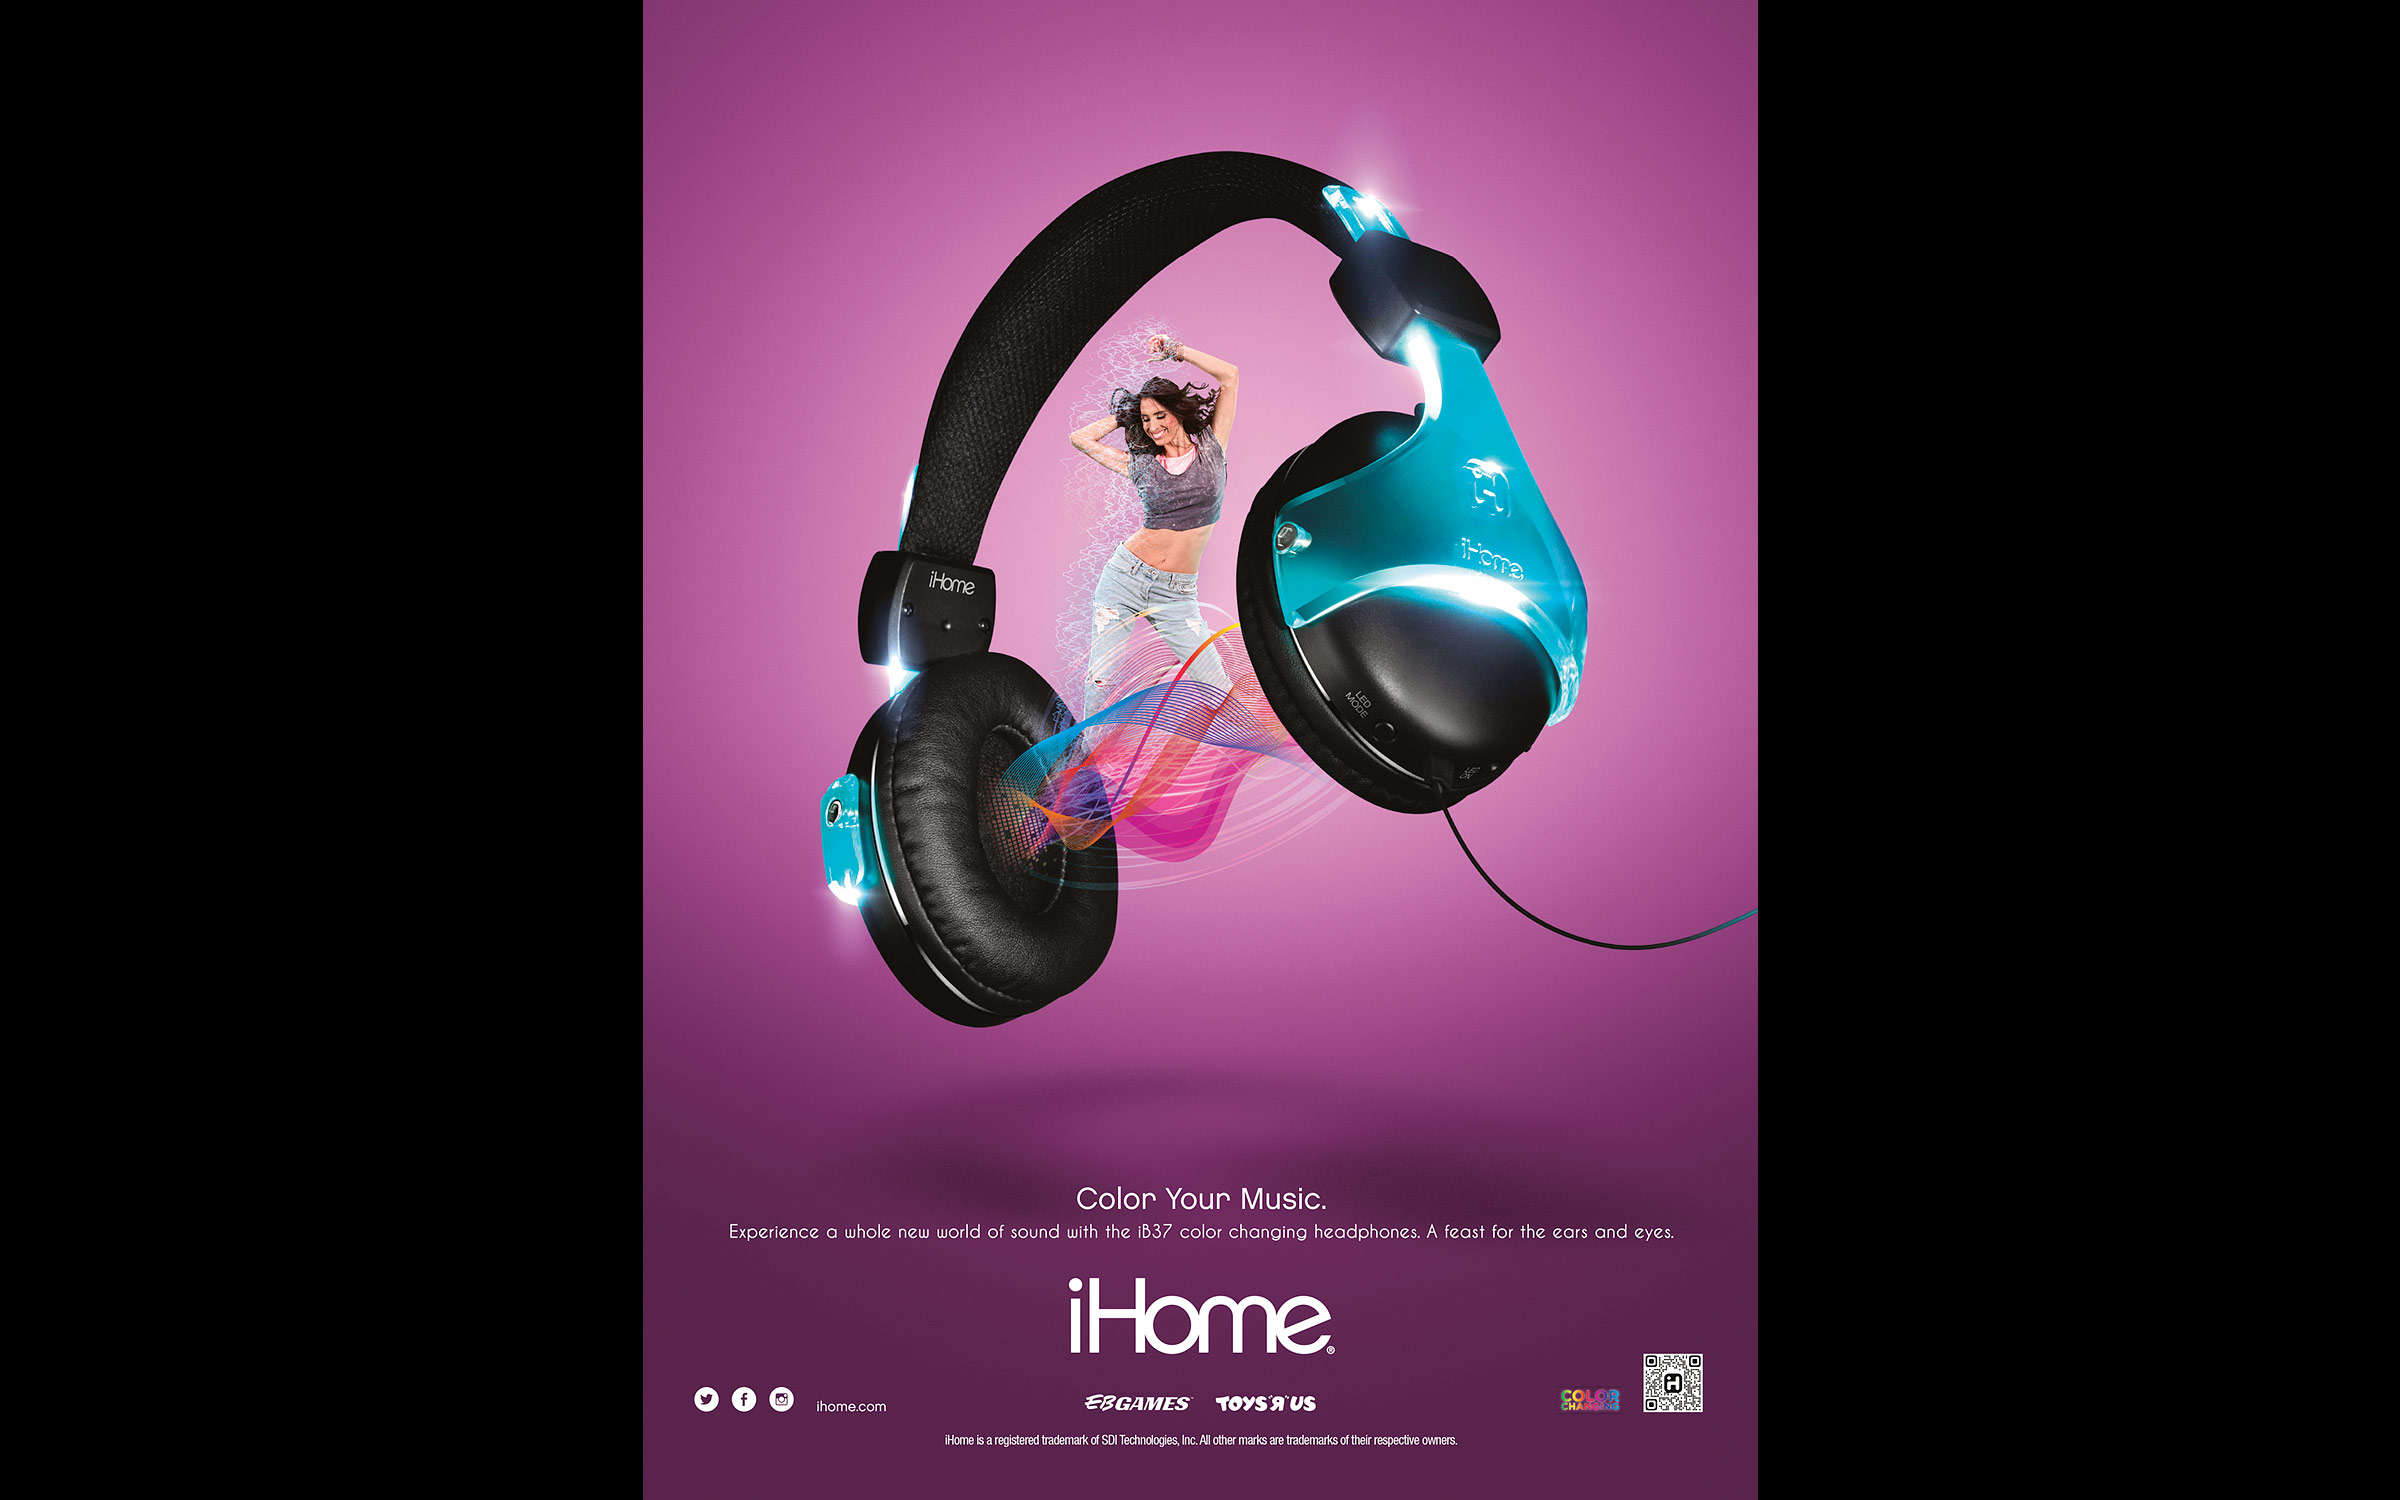 Product photography and still life photography of iHome headphones for an advertising campaign.